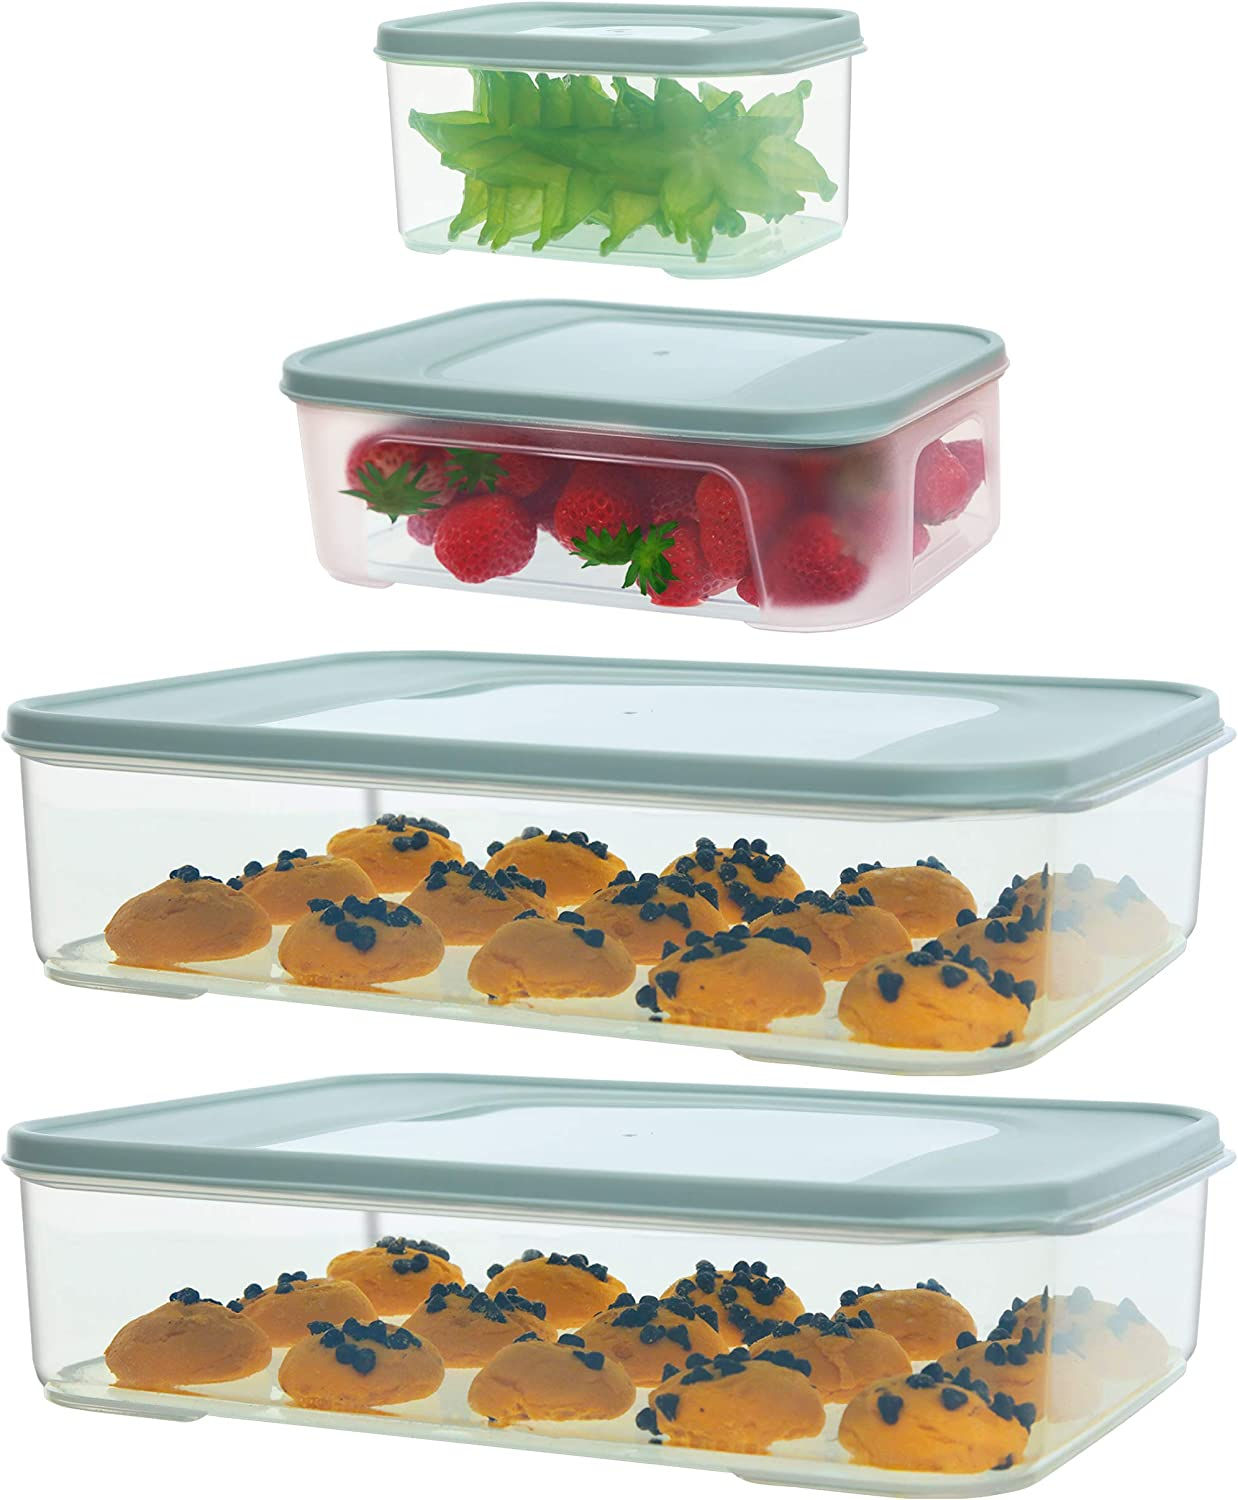 Citylife 4 Set Food Storage Containers with Lids Airtight 172oz, 60oz, 32oz Plastic Freezer Containers for Food Kitchen Food Prep Containers Microwave Dishwasher Safe